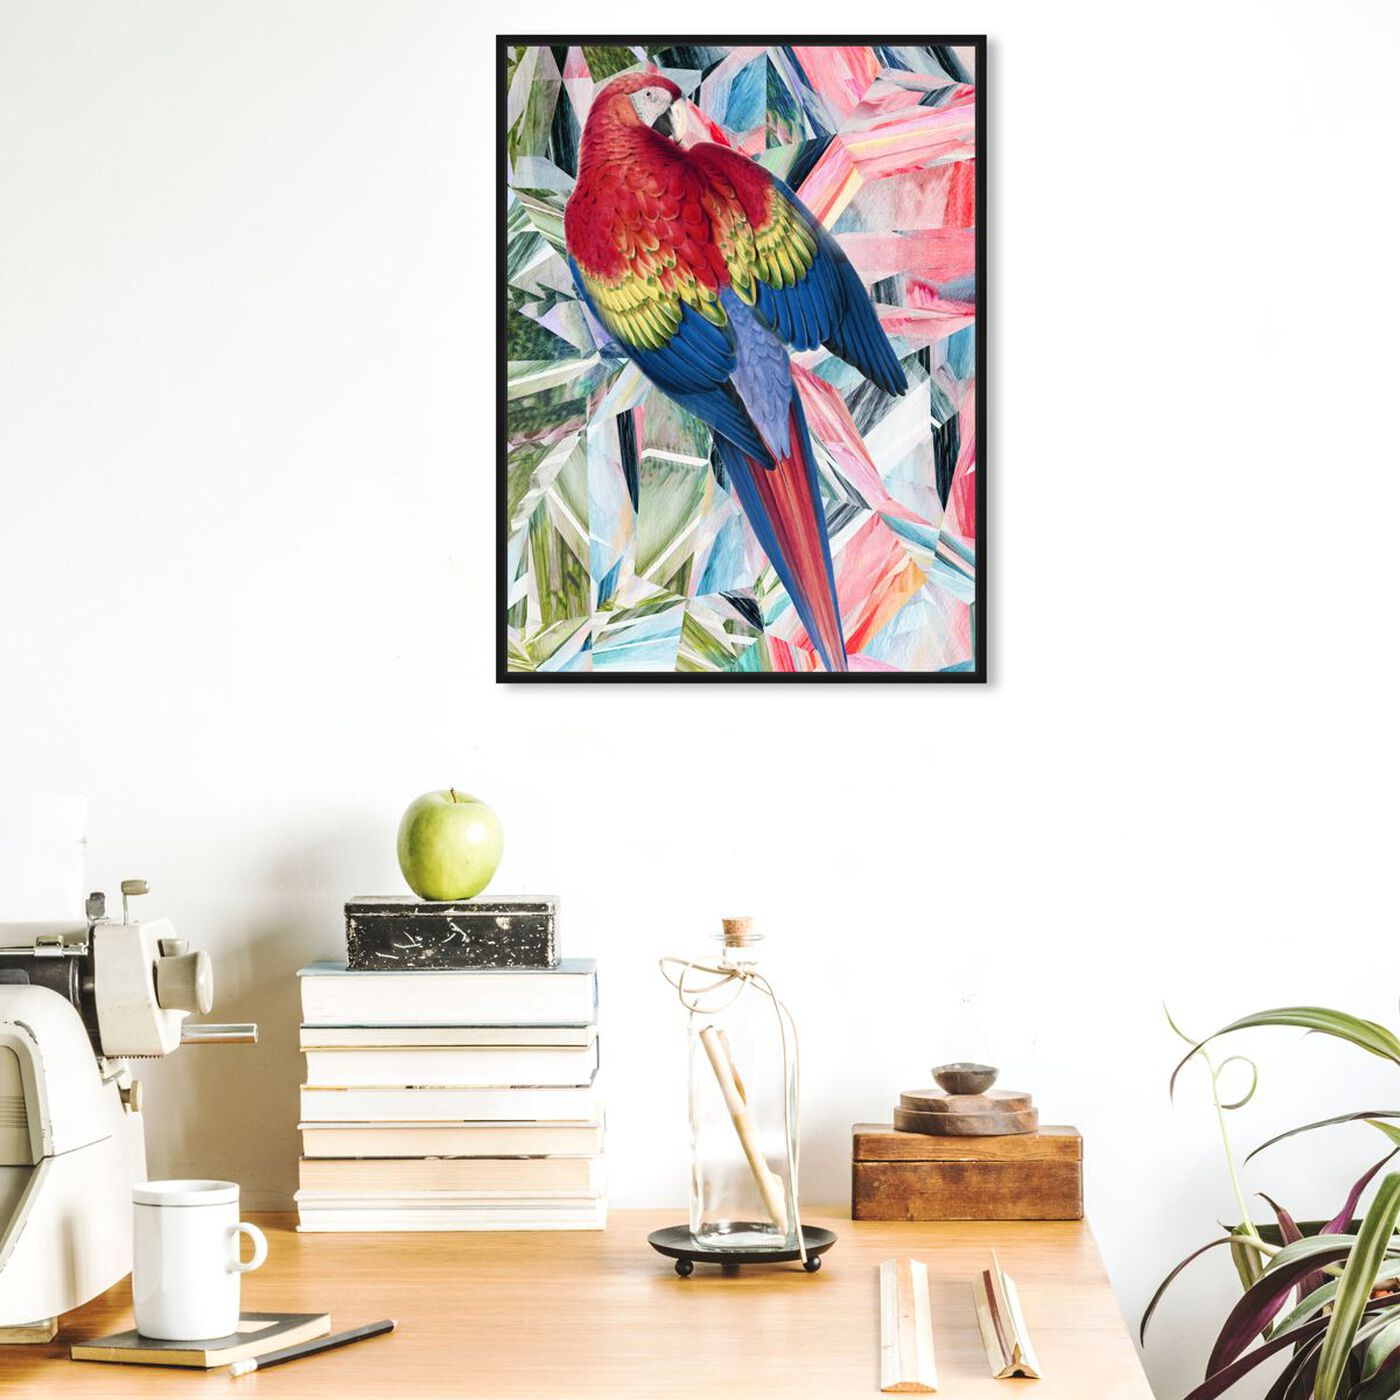 Hanging view of Modern Parrot featuring animals and birds art.